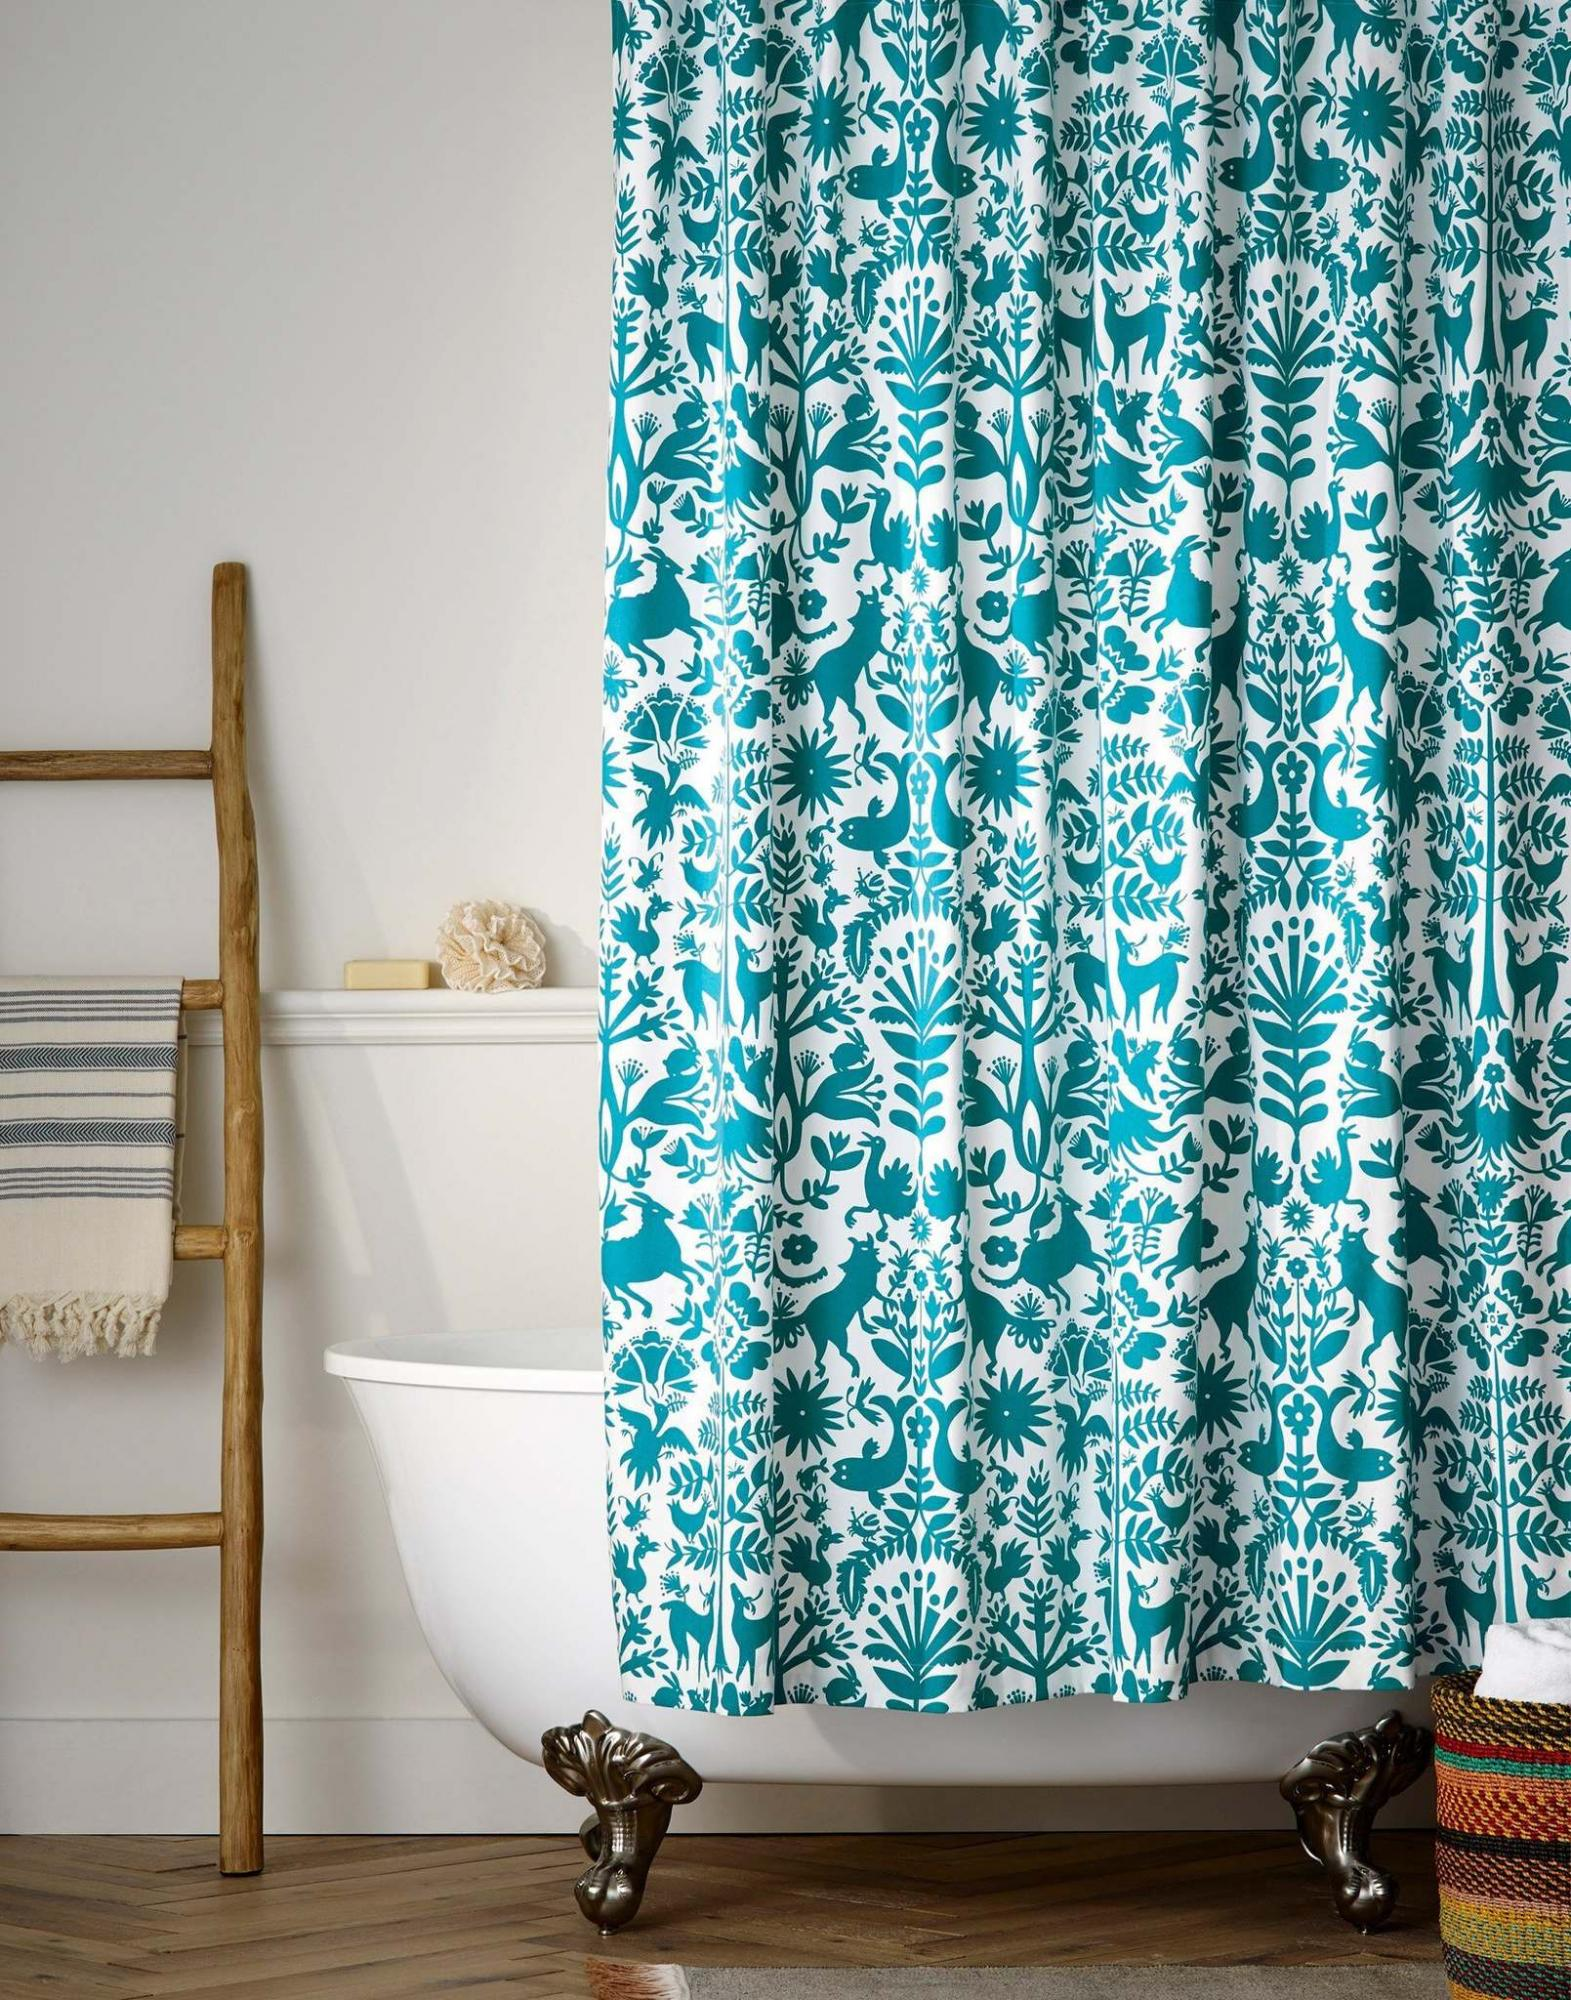 <p>Hygge & West</p><p>The Otomi Shower Curtain in turquoise from Hygge & West. Turquoise is a versatile design colour and can add a bright twist. </p>